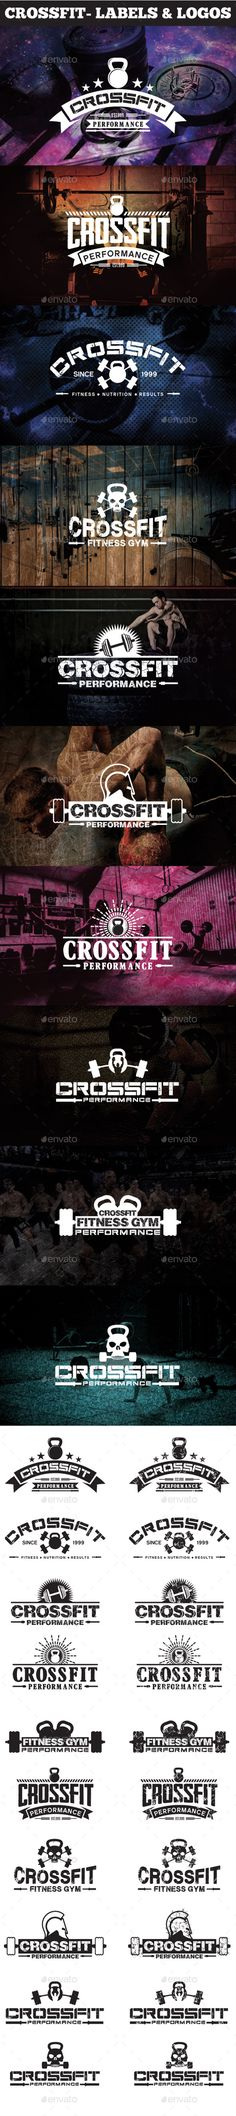 Crossfit- Labels & Logos Design. Download: http://graphicriver.net/item/crossfit-labels-logos/11426694?ref=ksioks